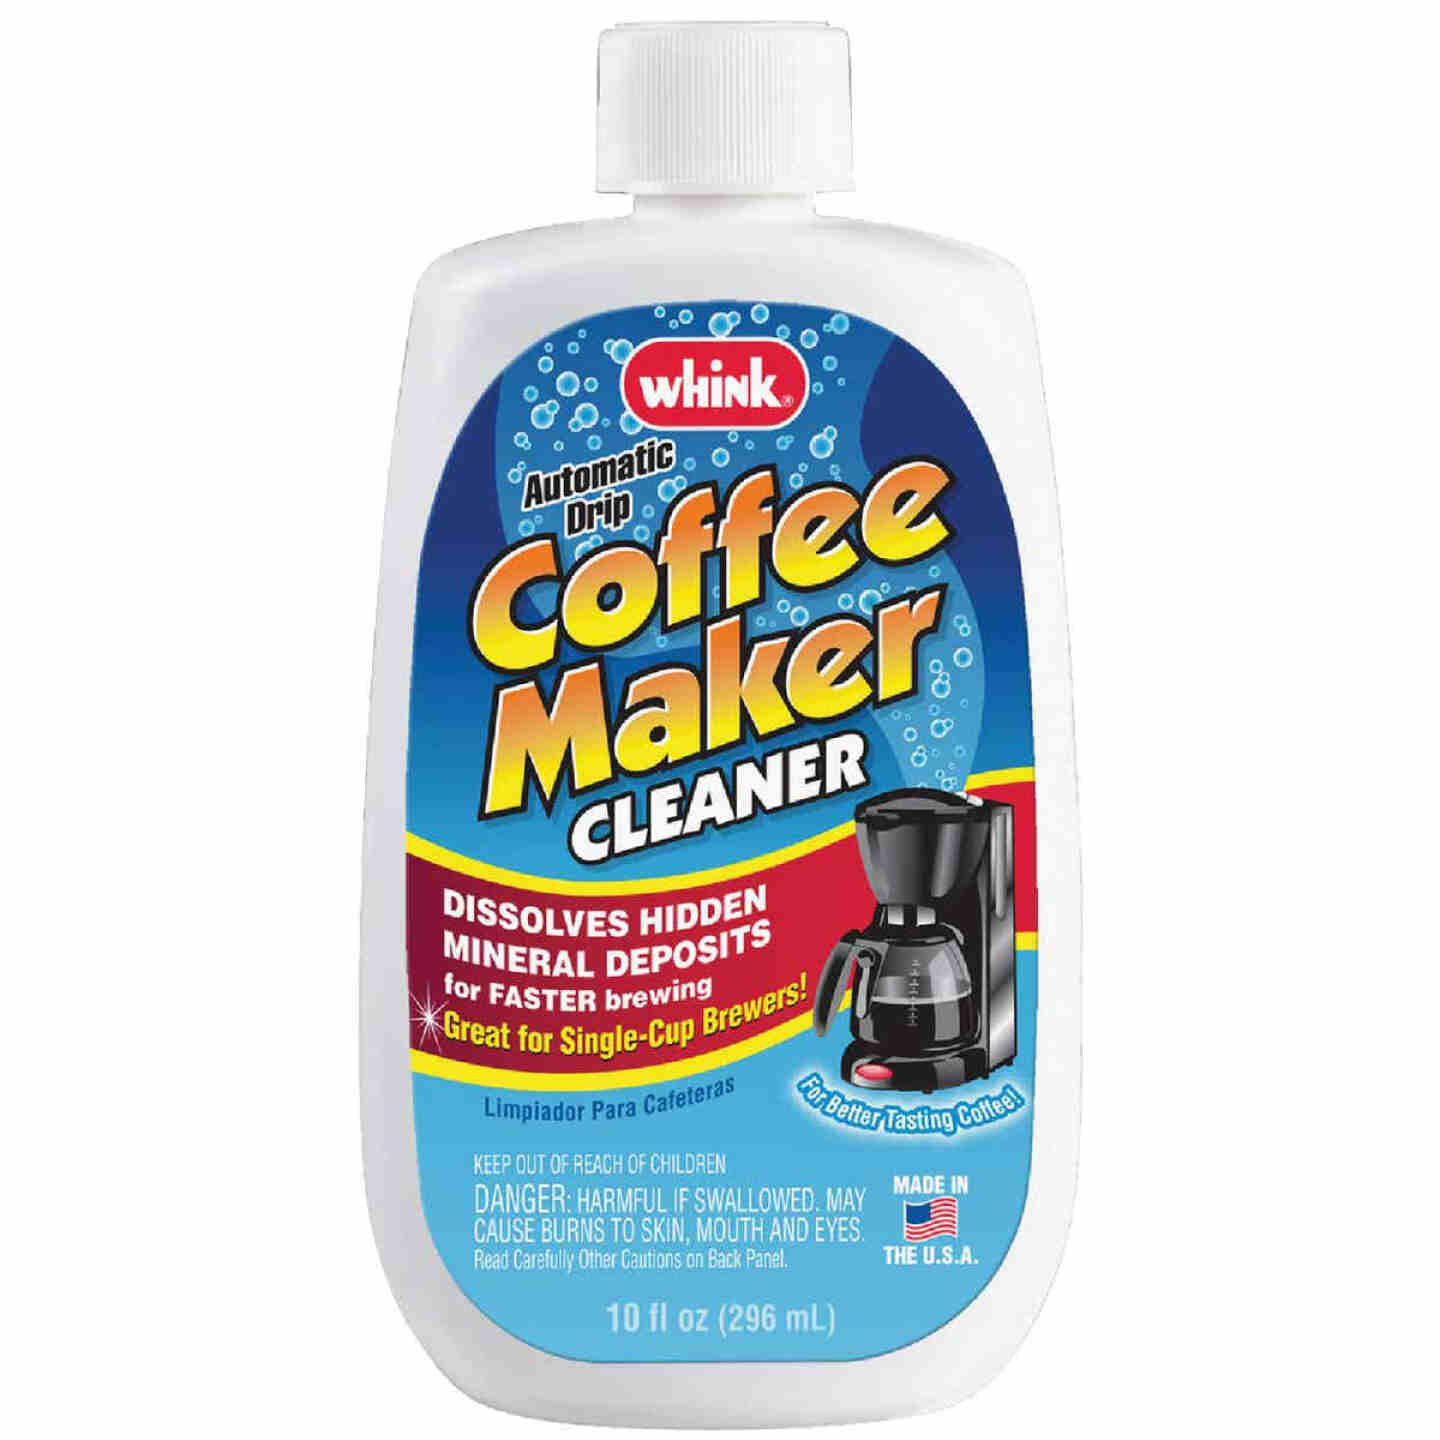 Whink 10 Oz. Automatic CoffeeMaker Cleaner Image 1